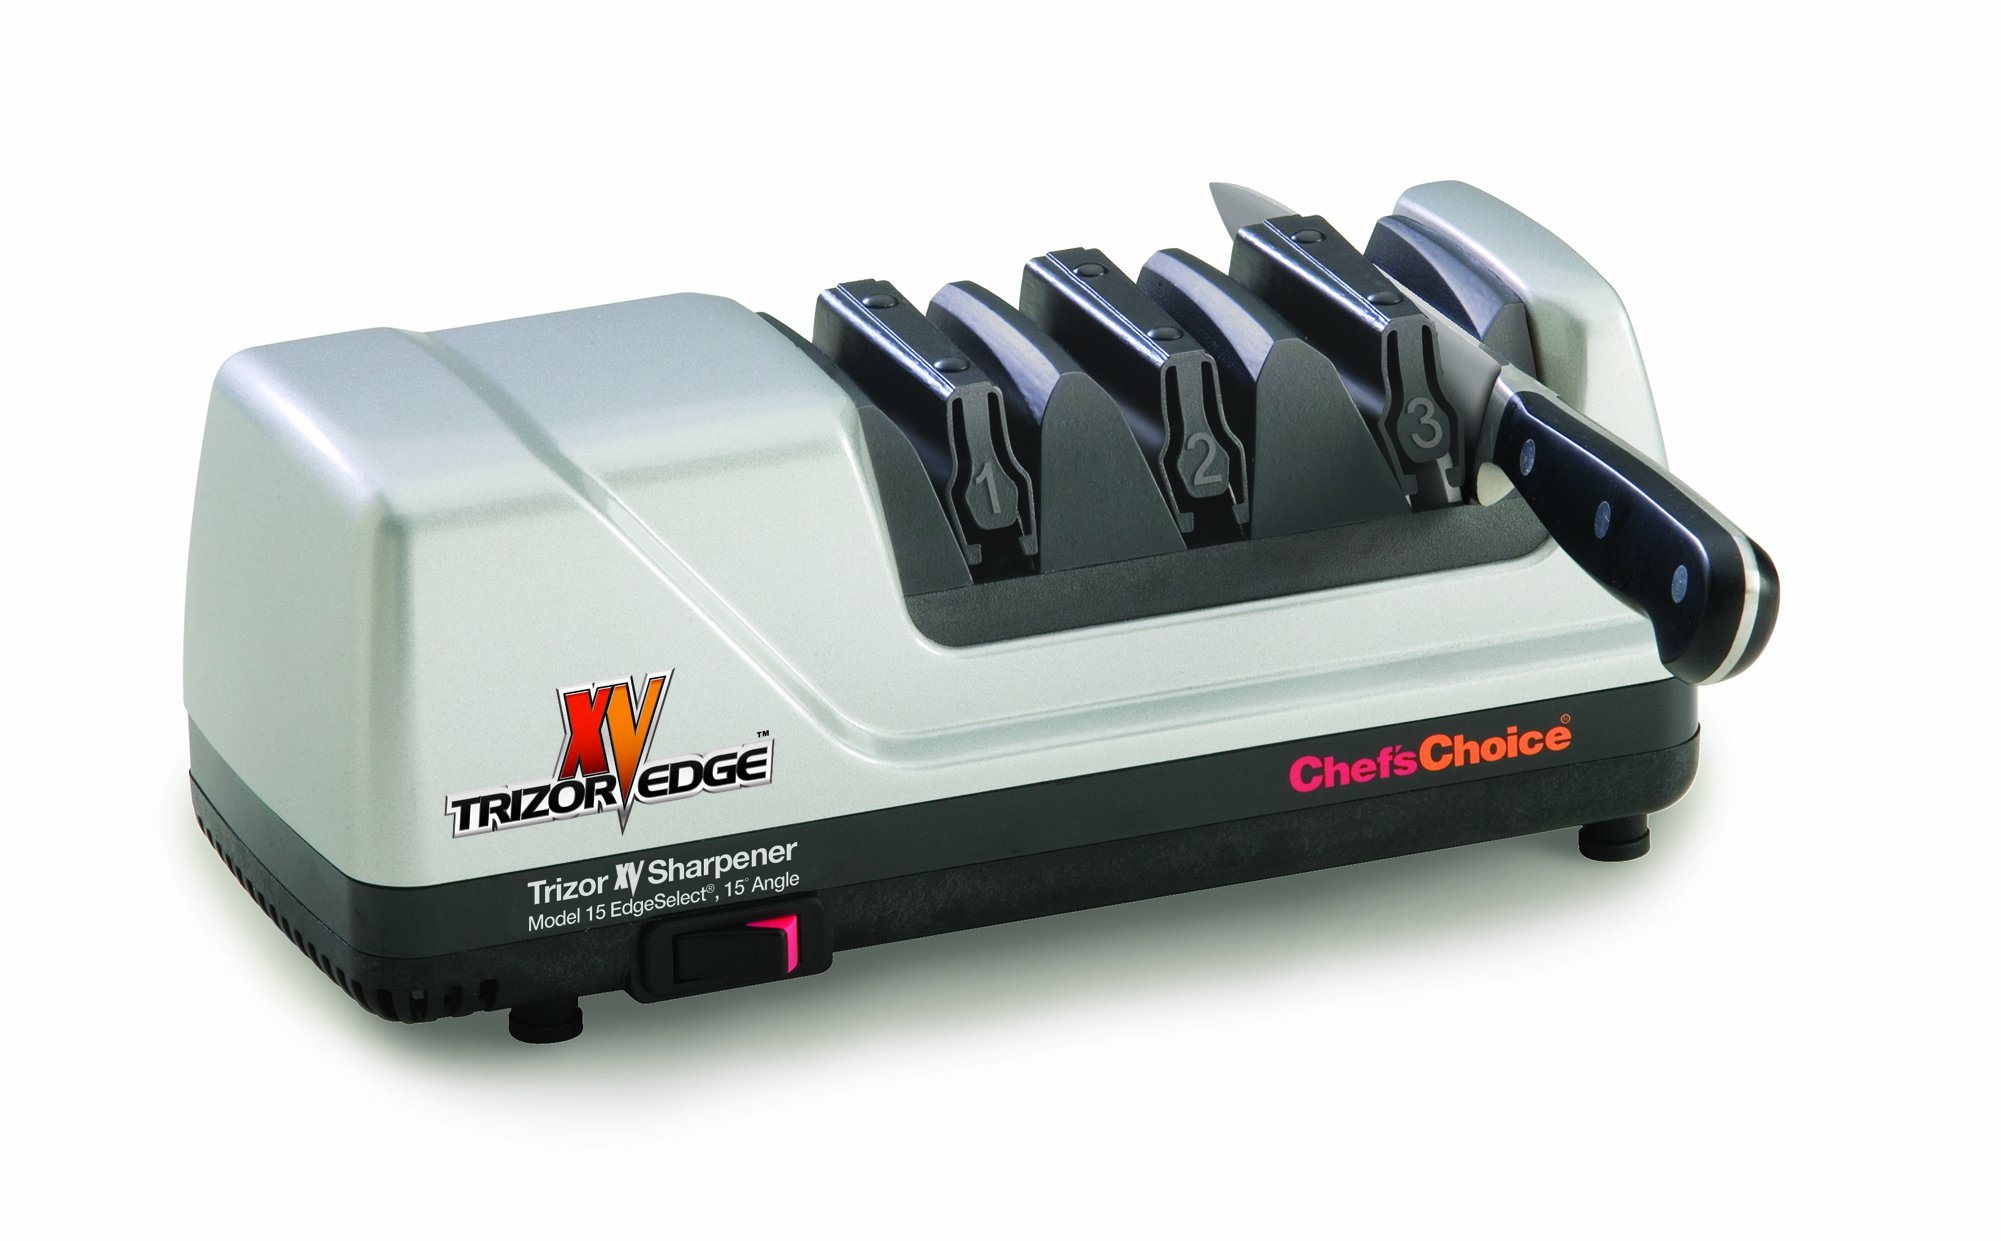 Chef's Choice 15 Trizor XV Edgeselect Electric Knife Sharpener, Brushed Metal by Chef'sChoice